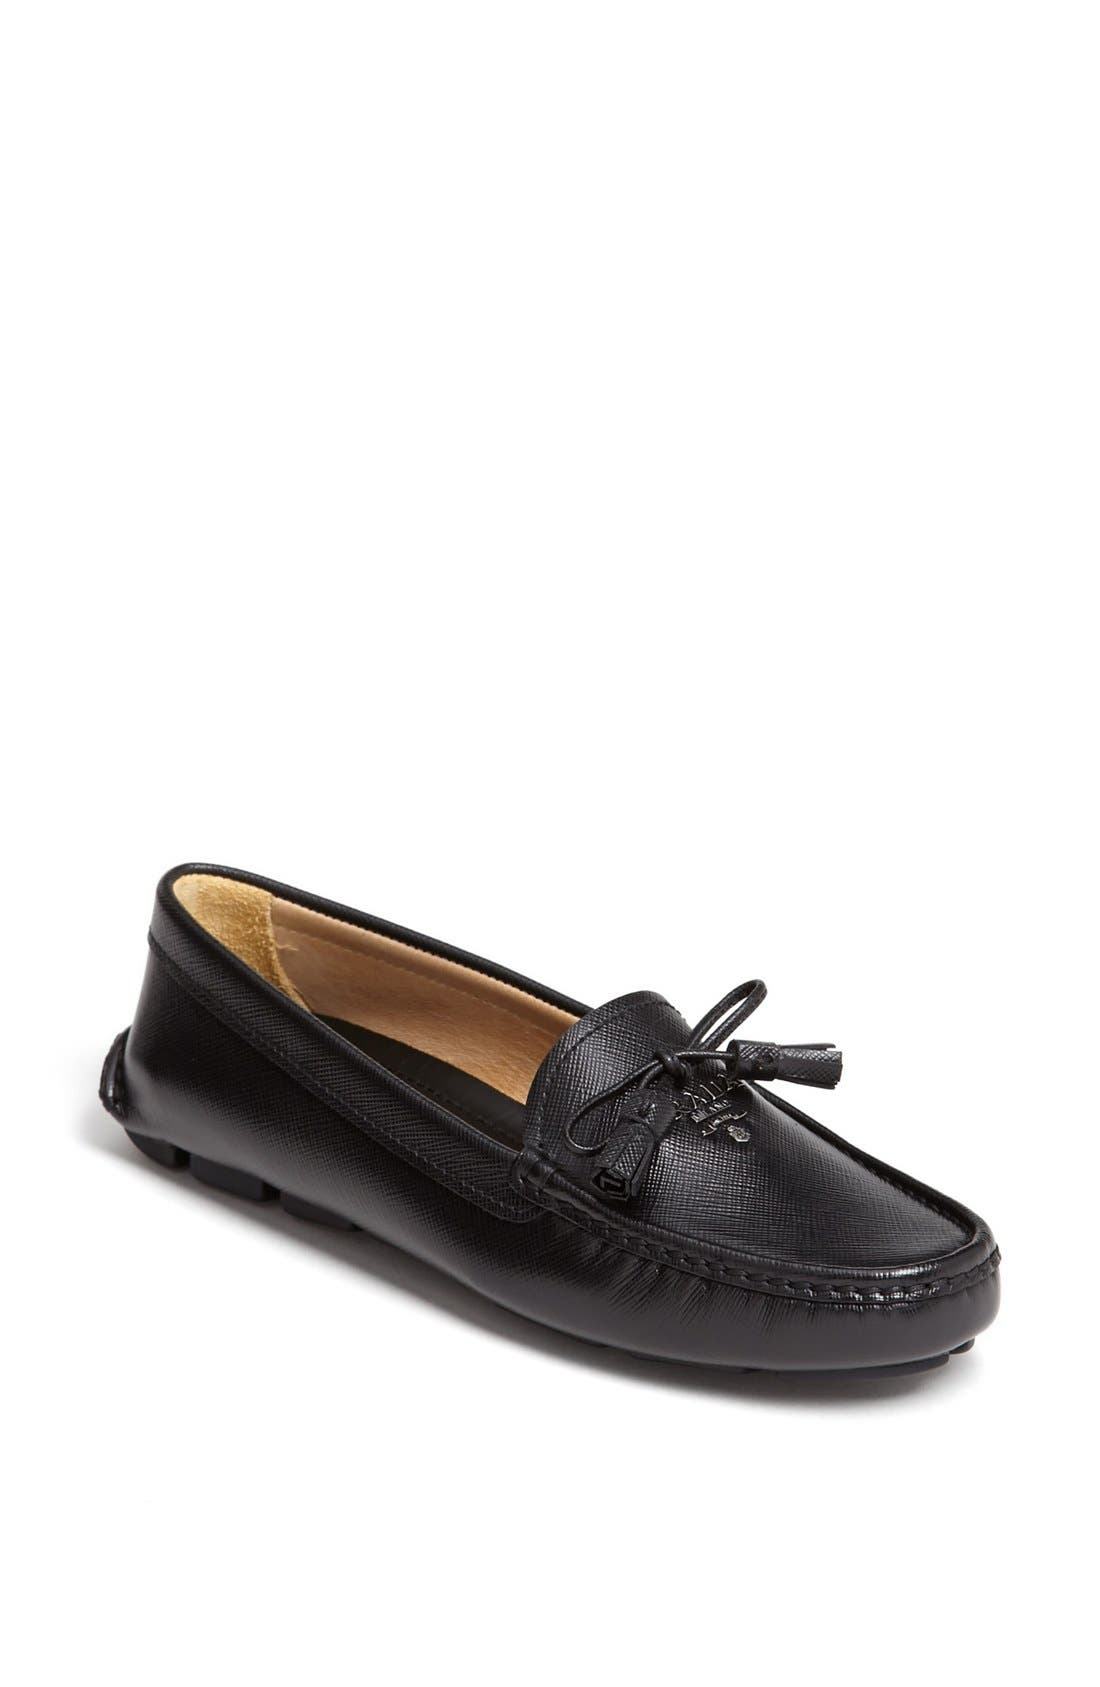 Alternate Image 1 Selected - Prada Tasseled Moccasin Loafer